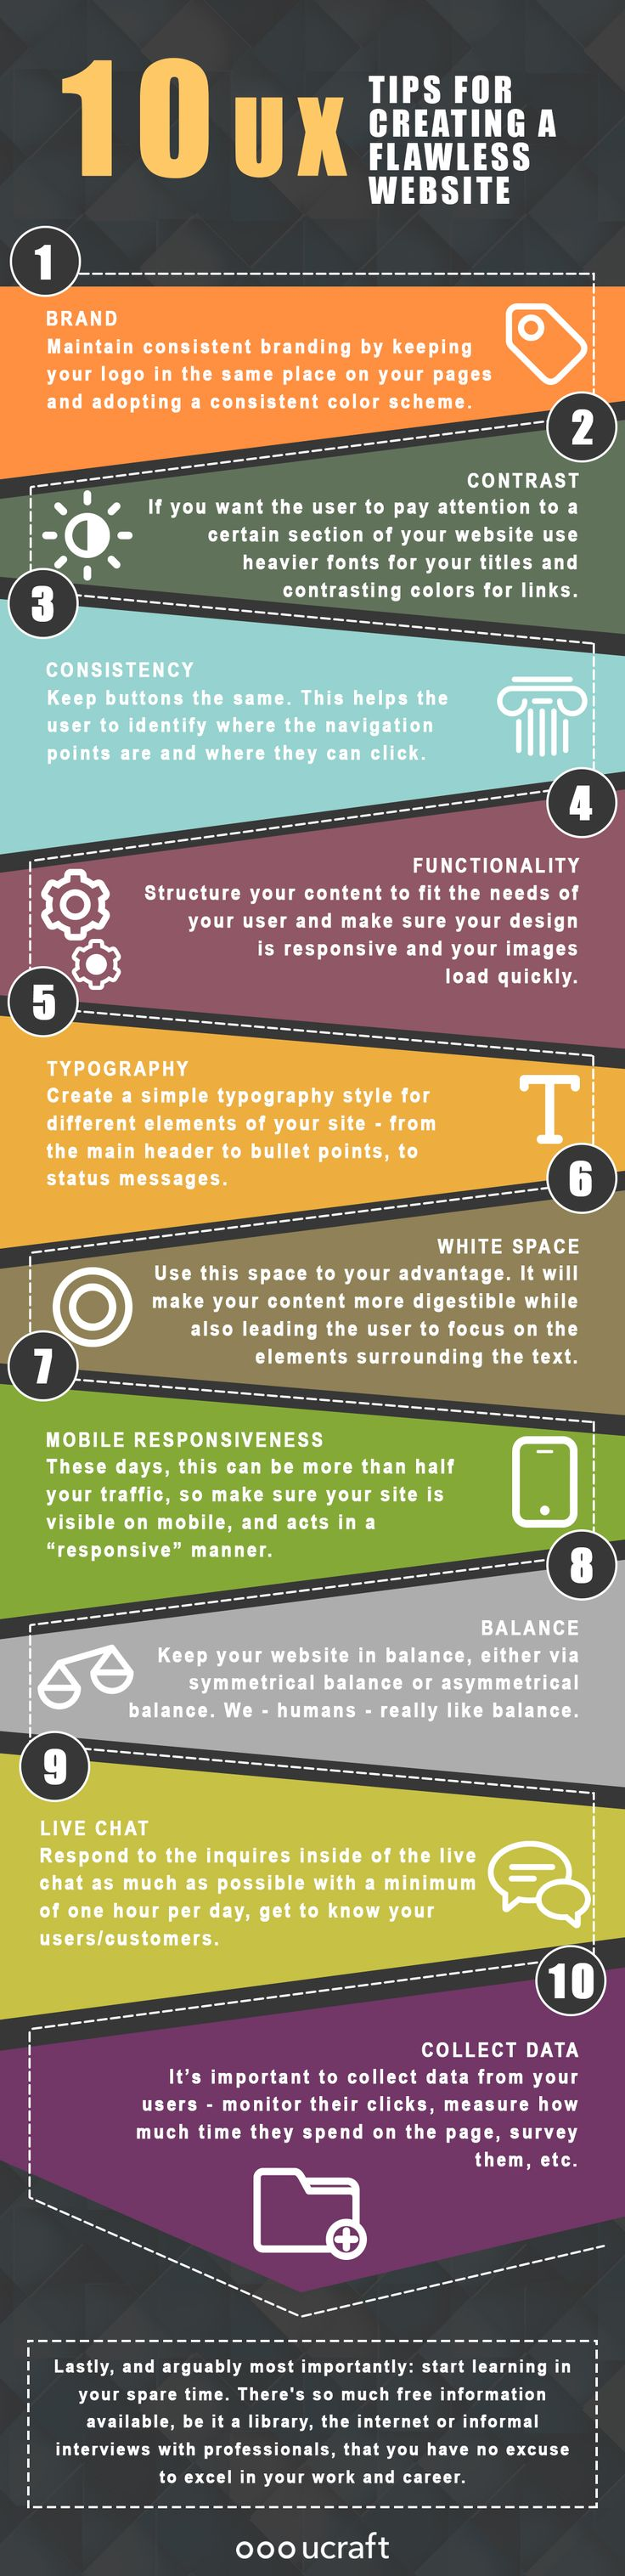 Learn how to improve your website's UX with this 10-step infographic. http://www.creativebloq.com/news/10-ux-tips-for-creating-a-flawless-website